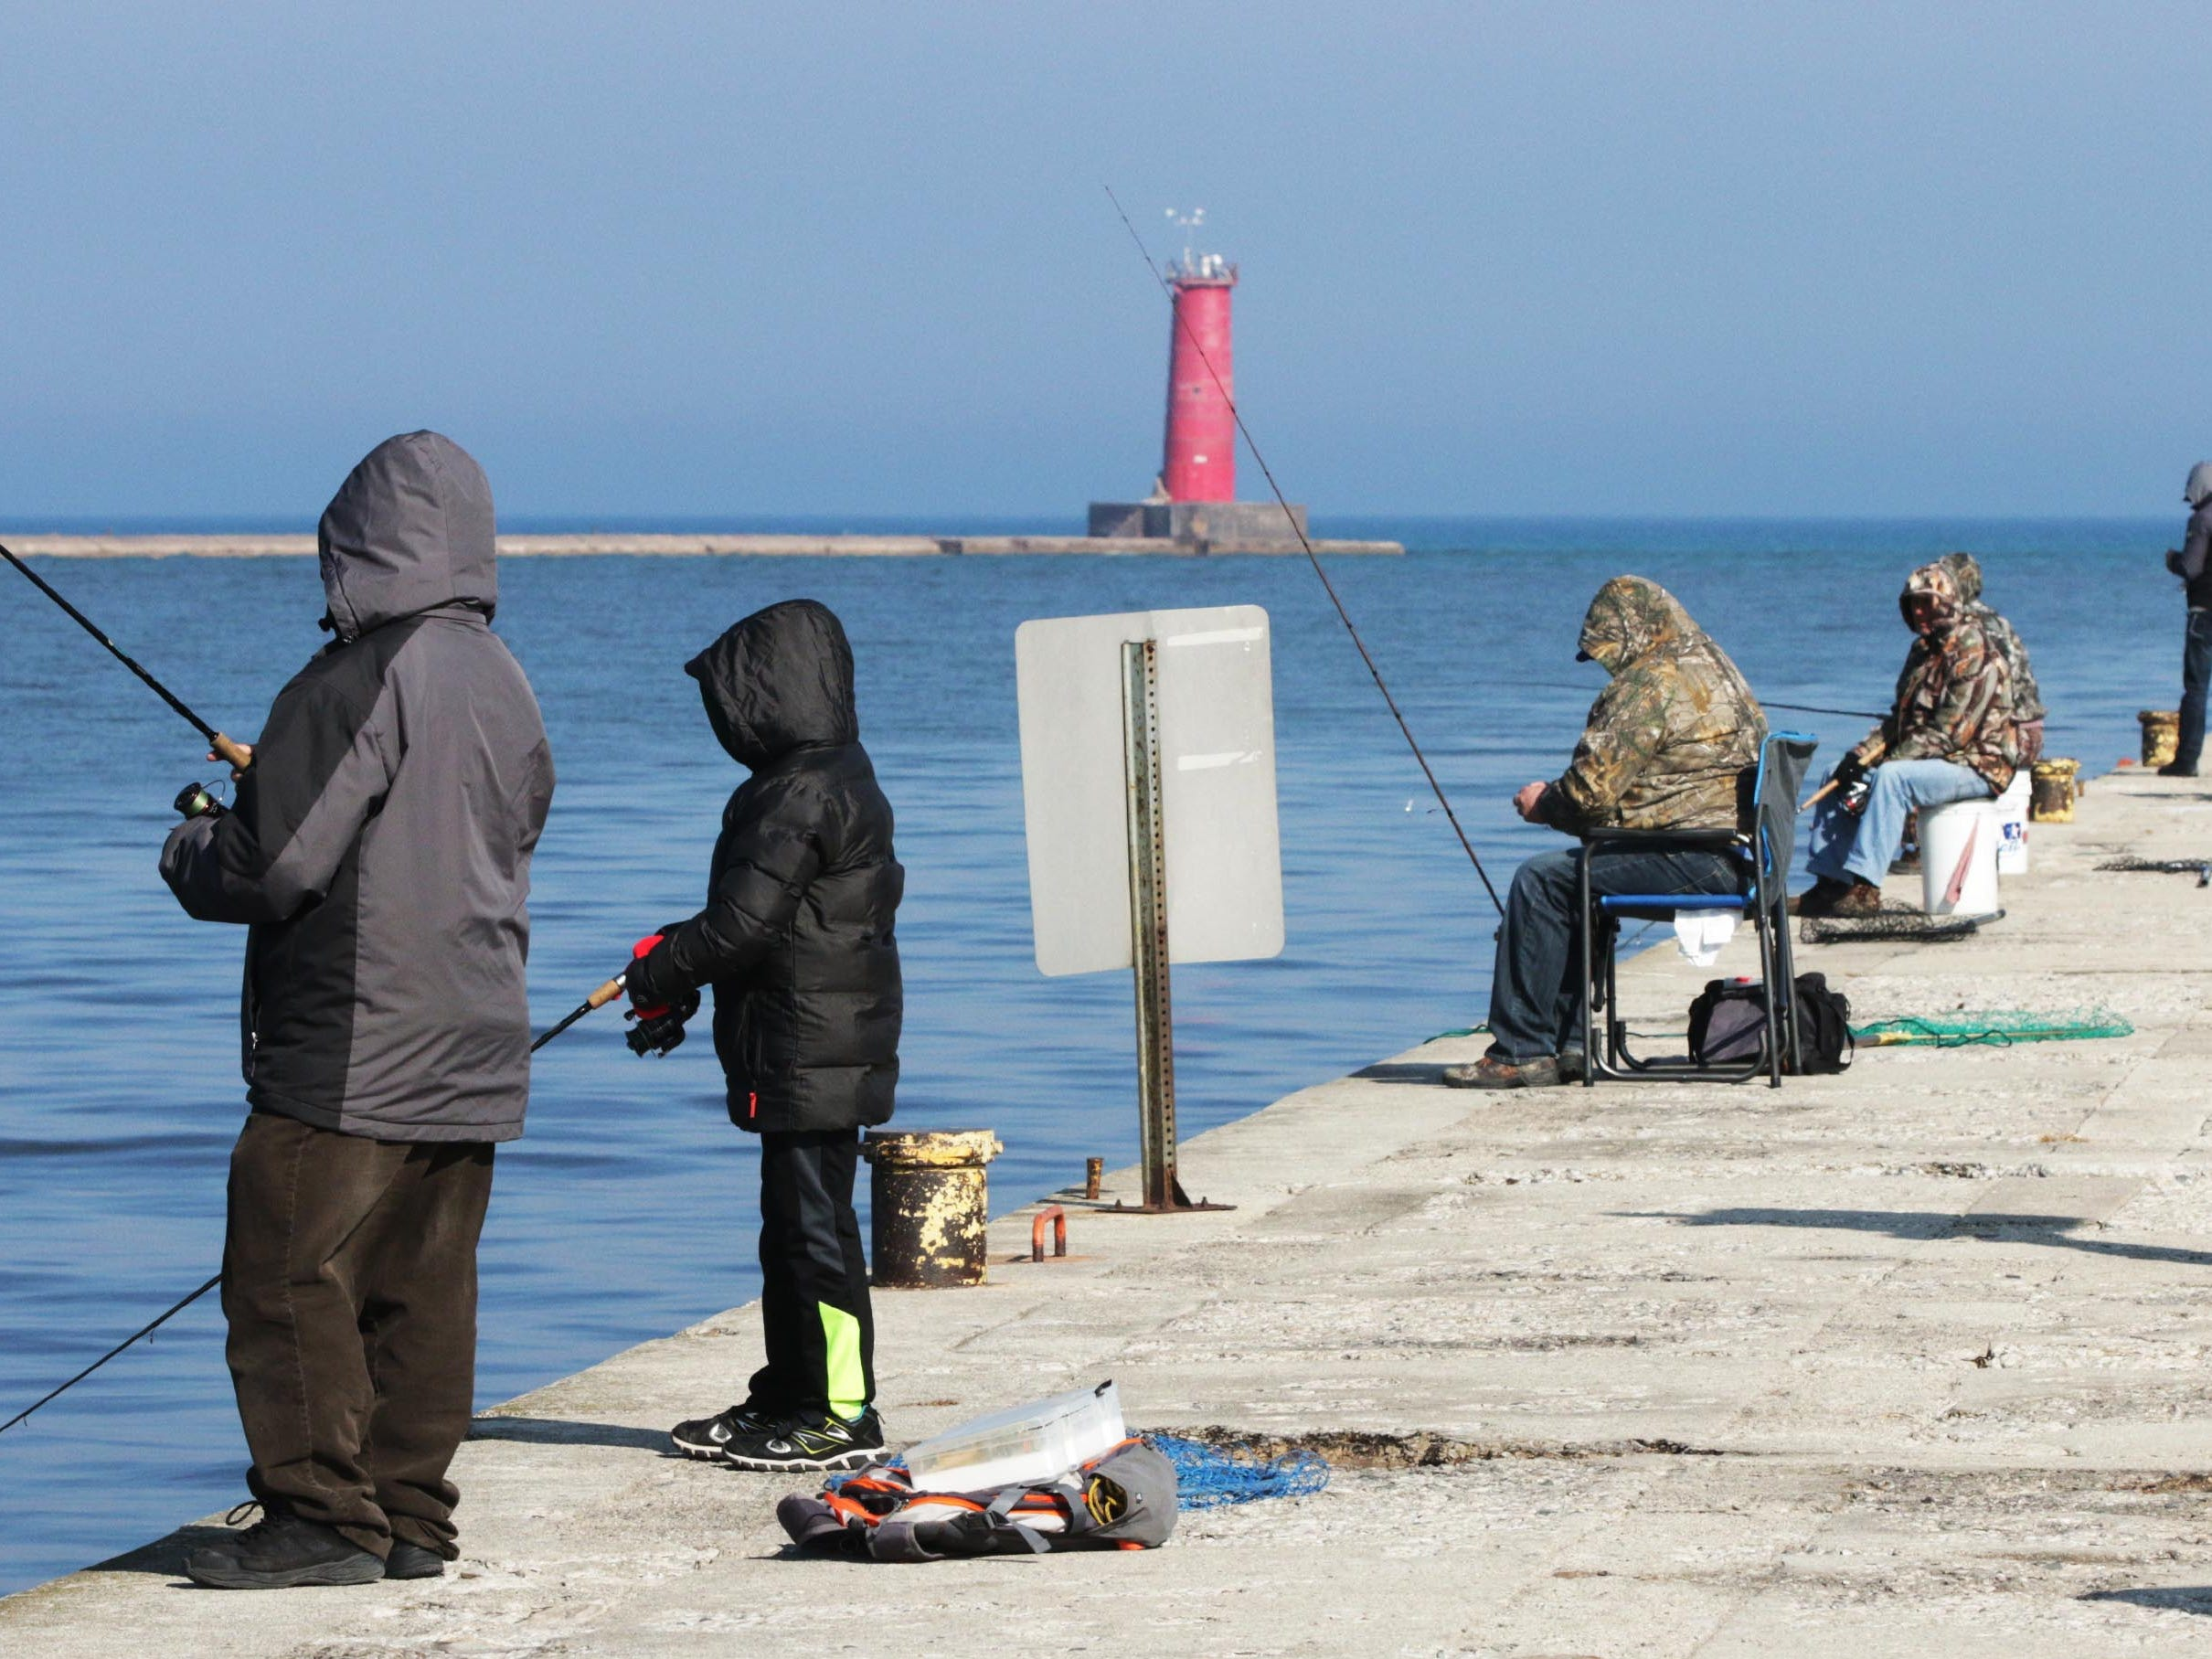 Warmer weather brought out people to south pier to fish, Wednesday, March 28, 2018, in Sheboygan, Wis.